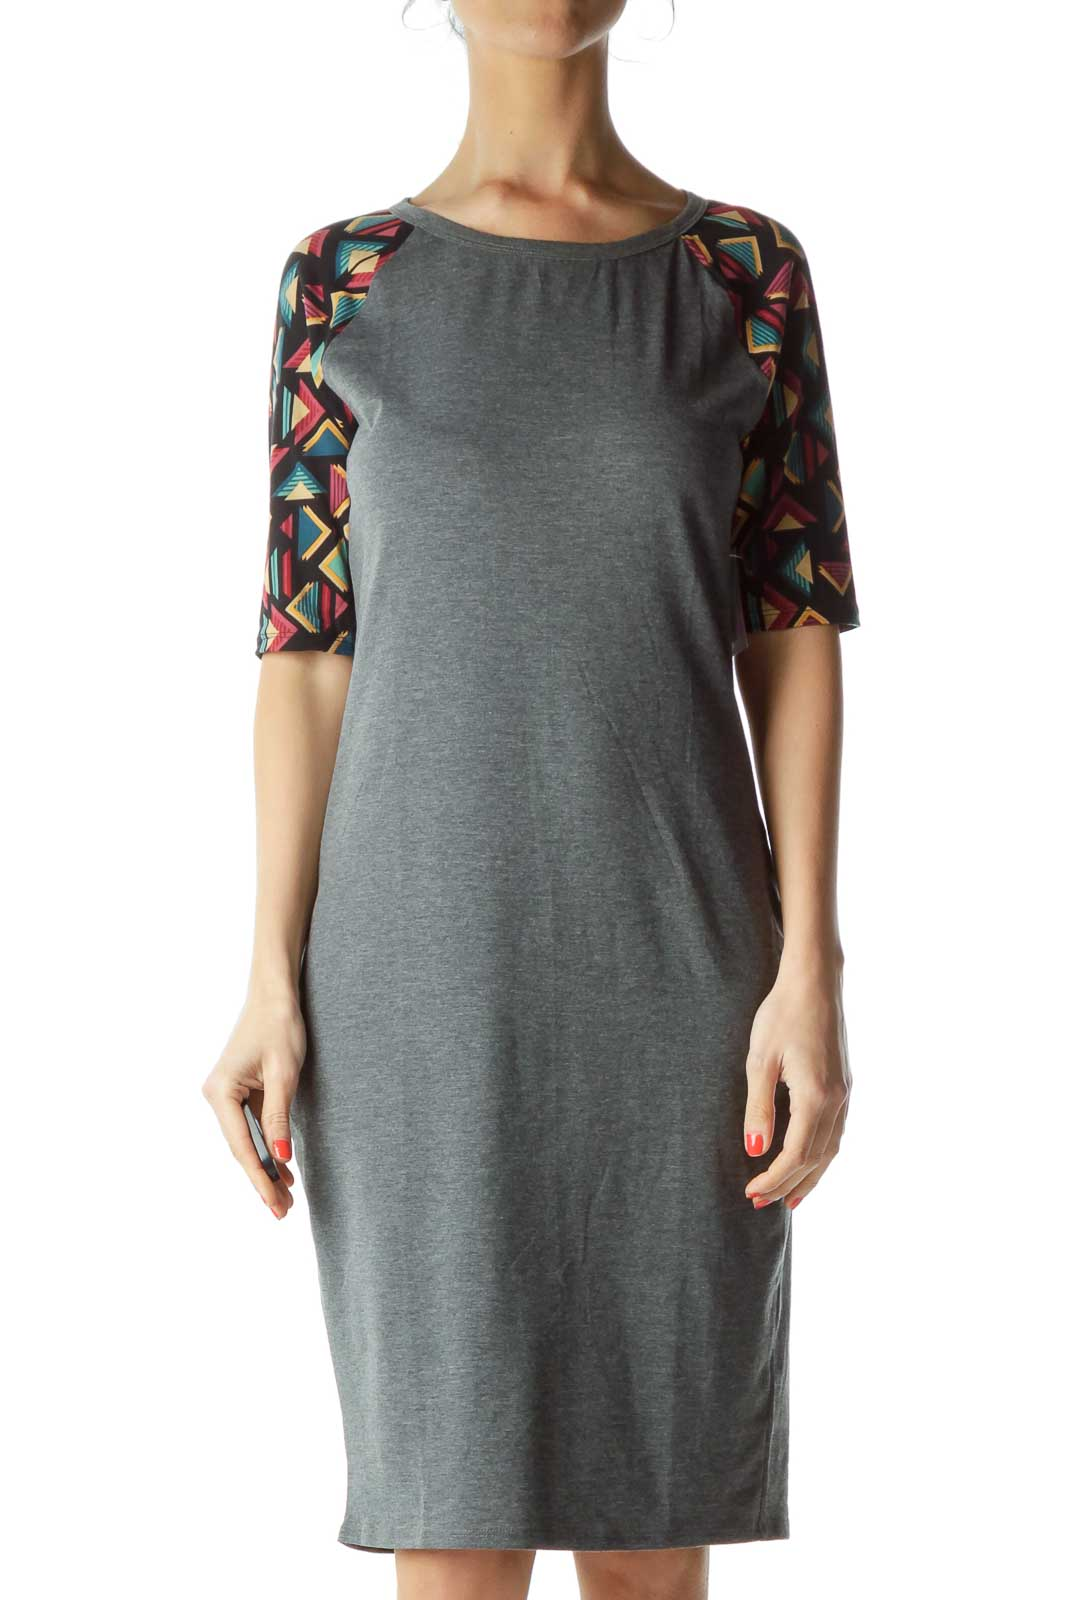 Gray Tribal Print Sleeve Jersey Dress Front